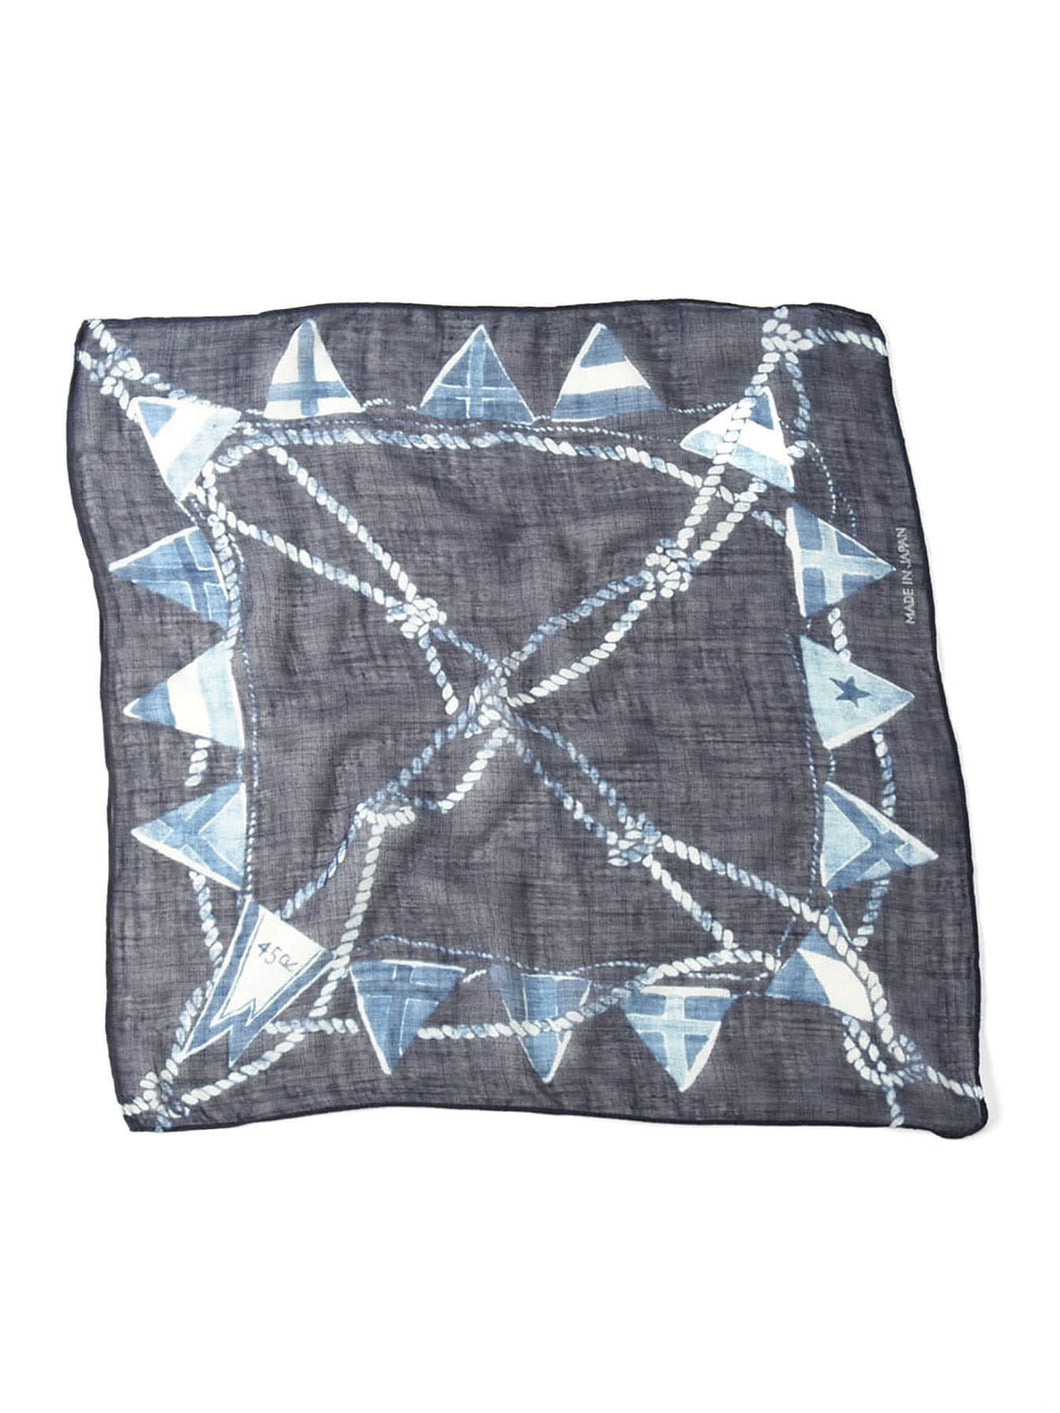 Indigo Gauze Cotton Rope Print Bandana in indigo